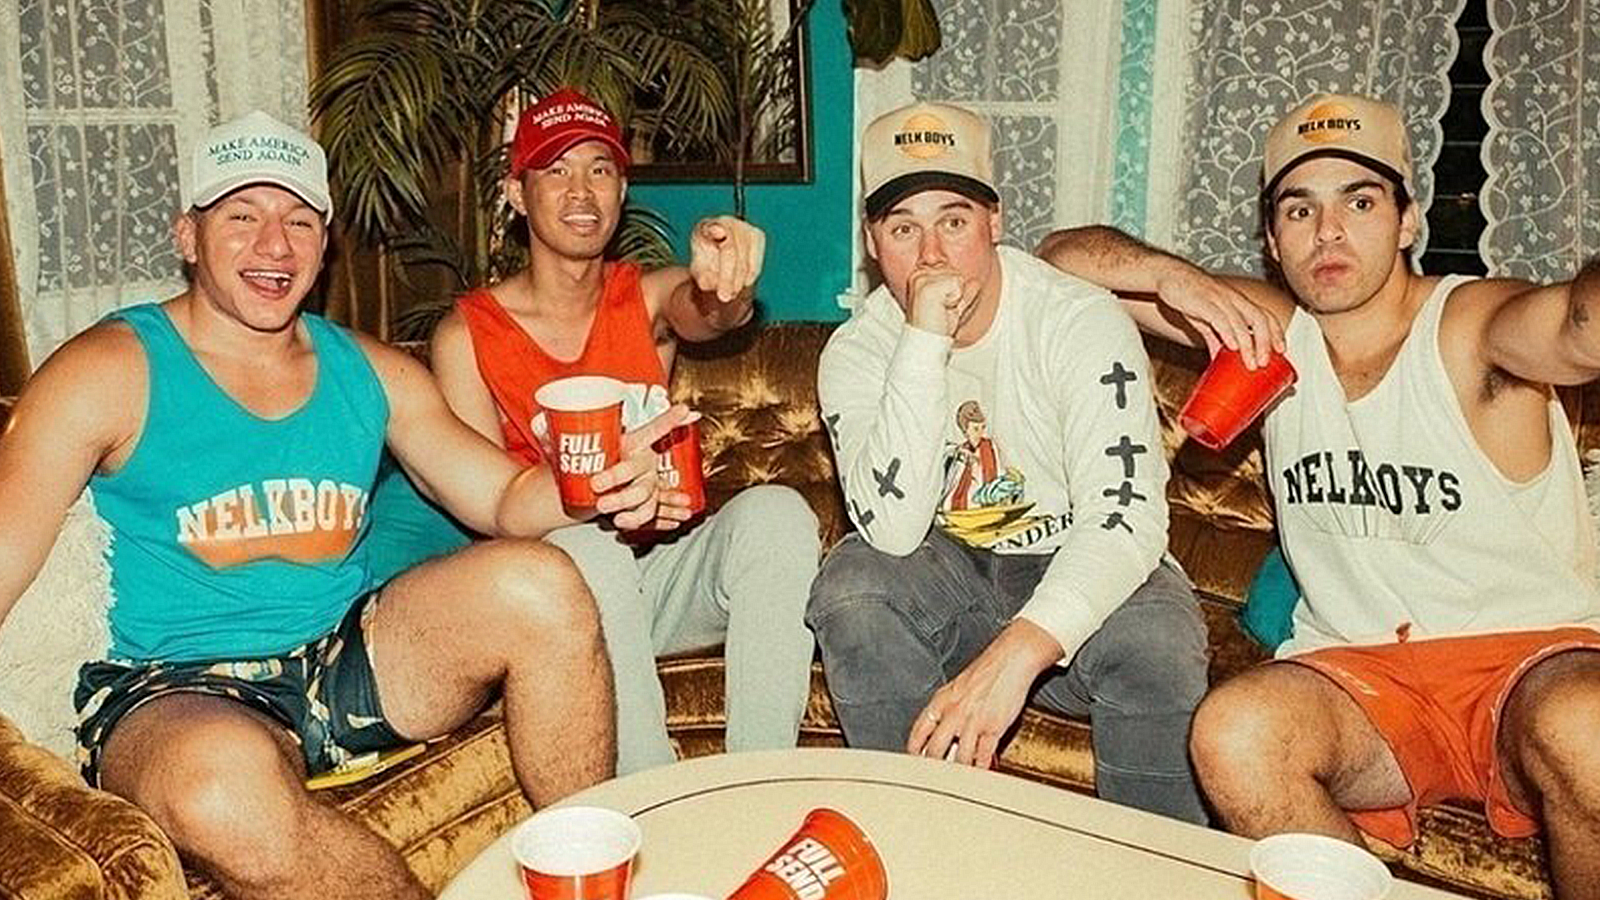 The NELK Boys sit together while partying.